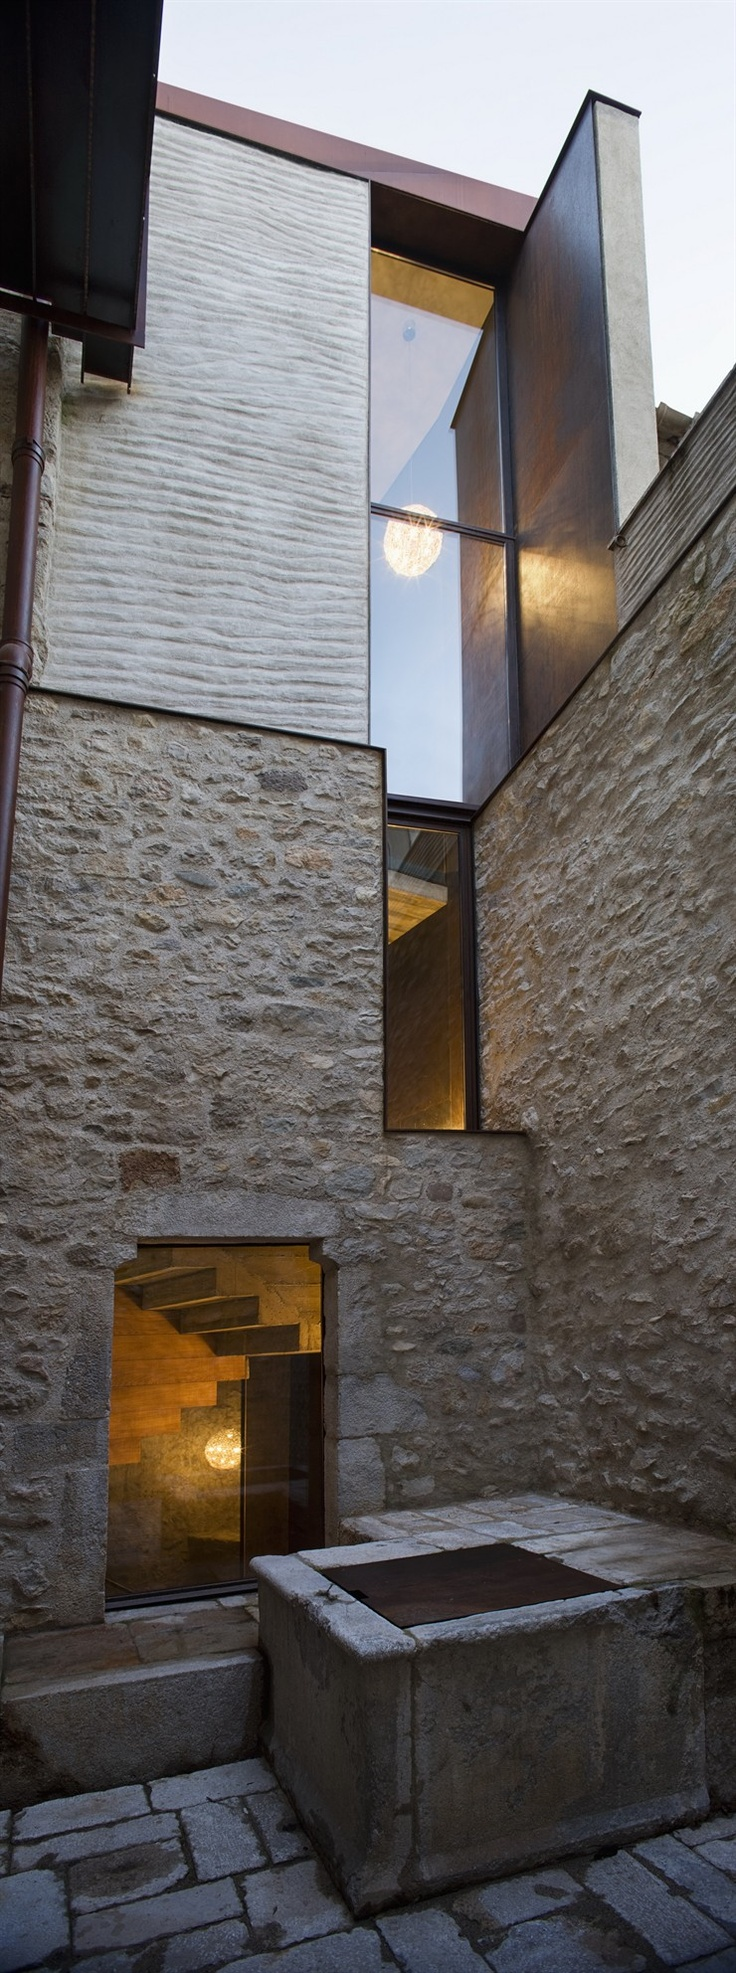 Alemanys 5 - Beautiful restoration in Girona, Spain by Anna Noguera Architects: Architects, Building, Enric Duch, Noguera Nieto, Photo Enric, Alemani, Anna Walnut, Architecture, Modern Home